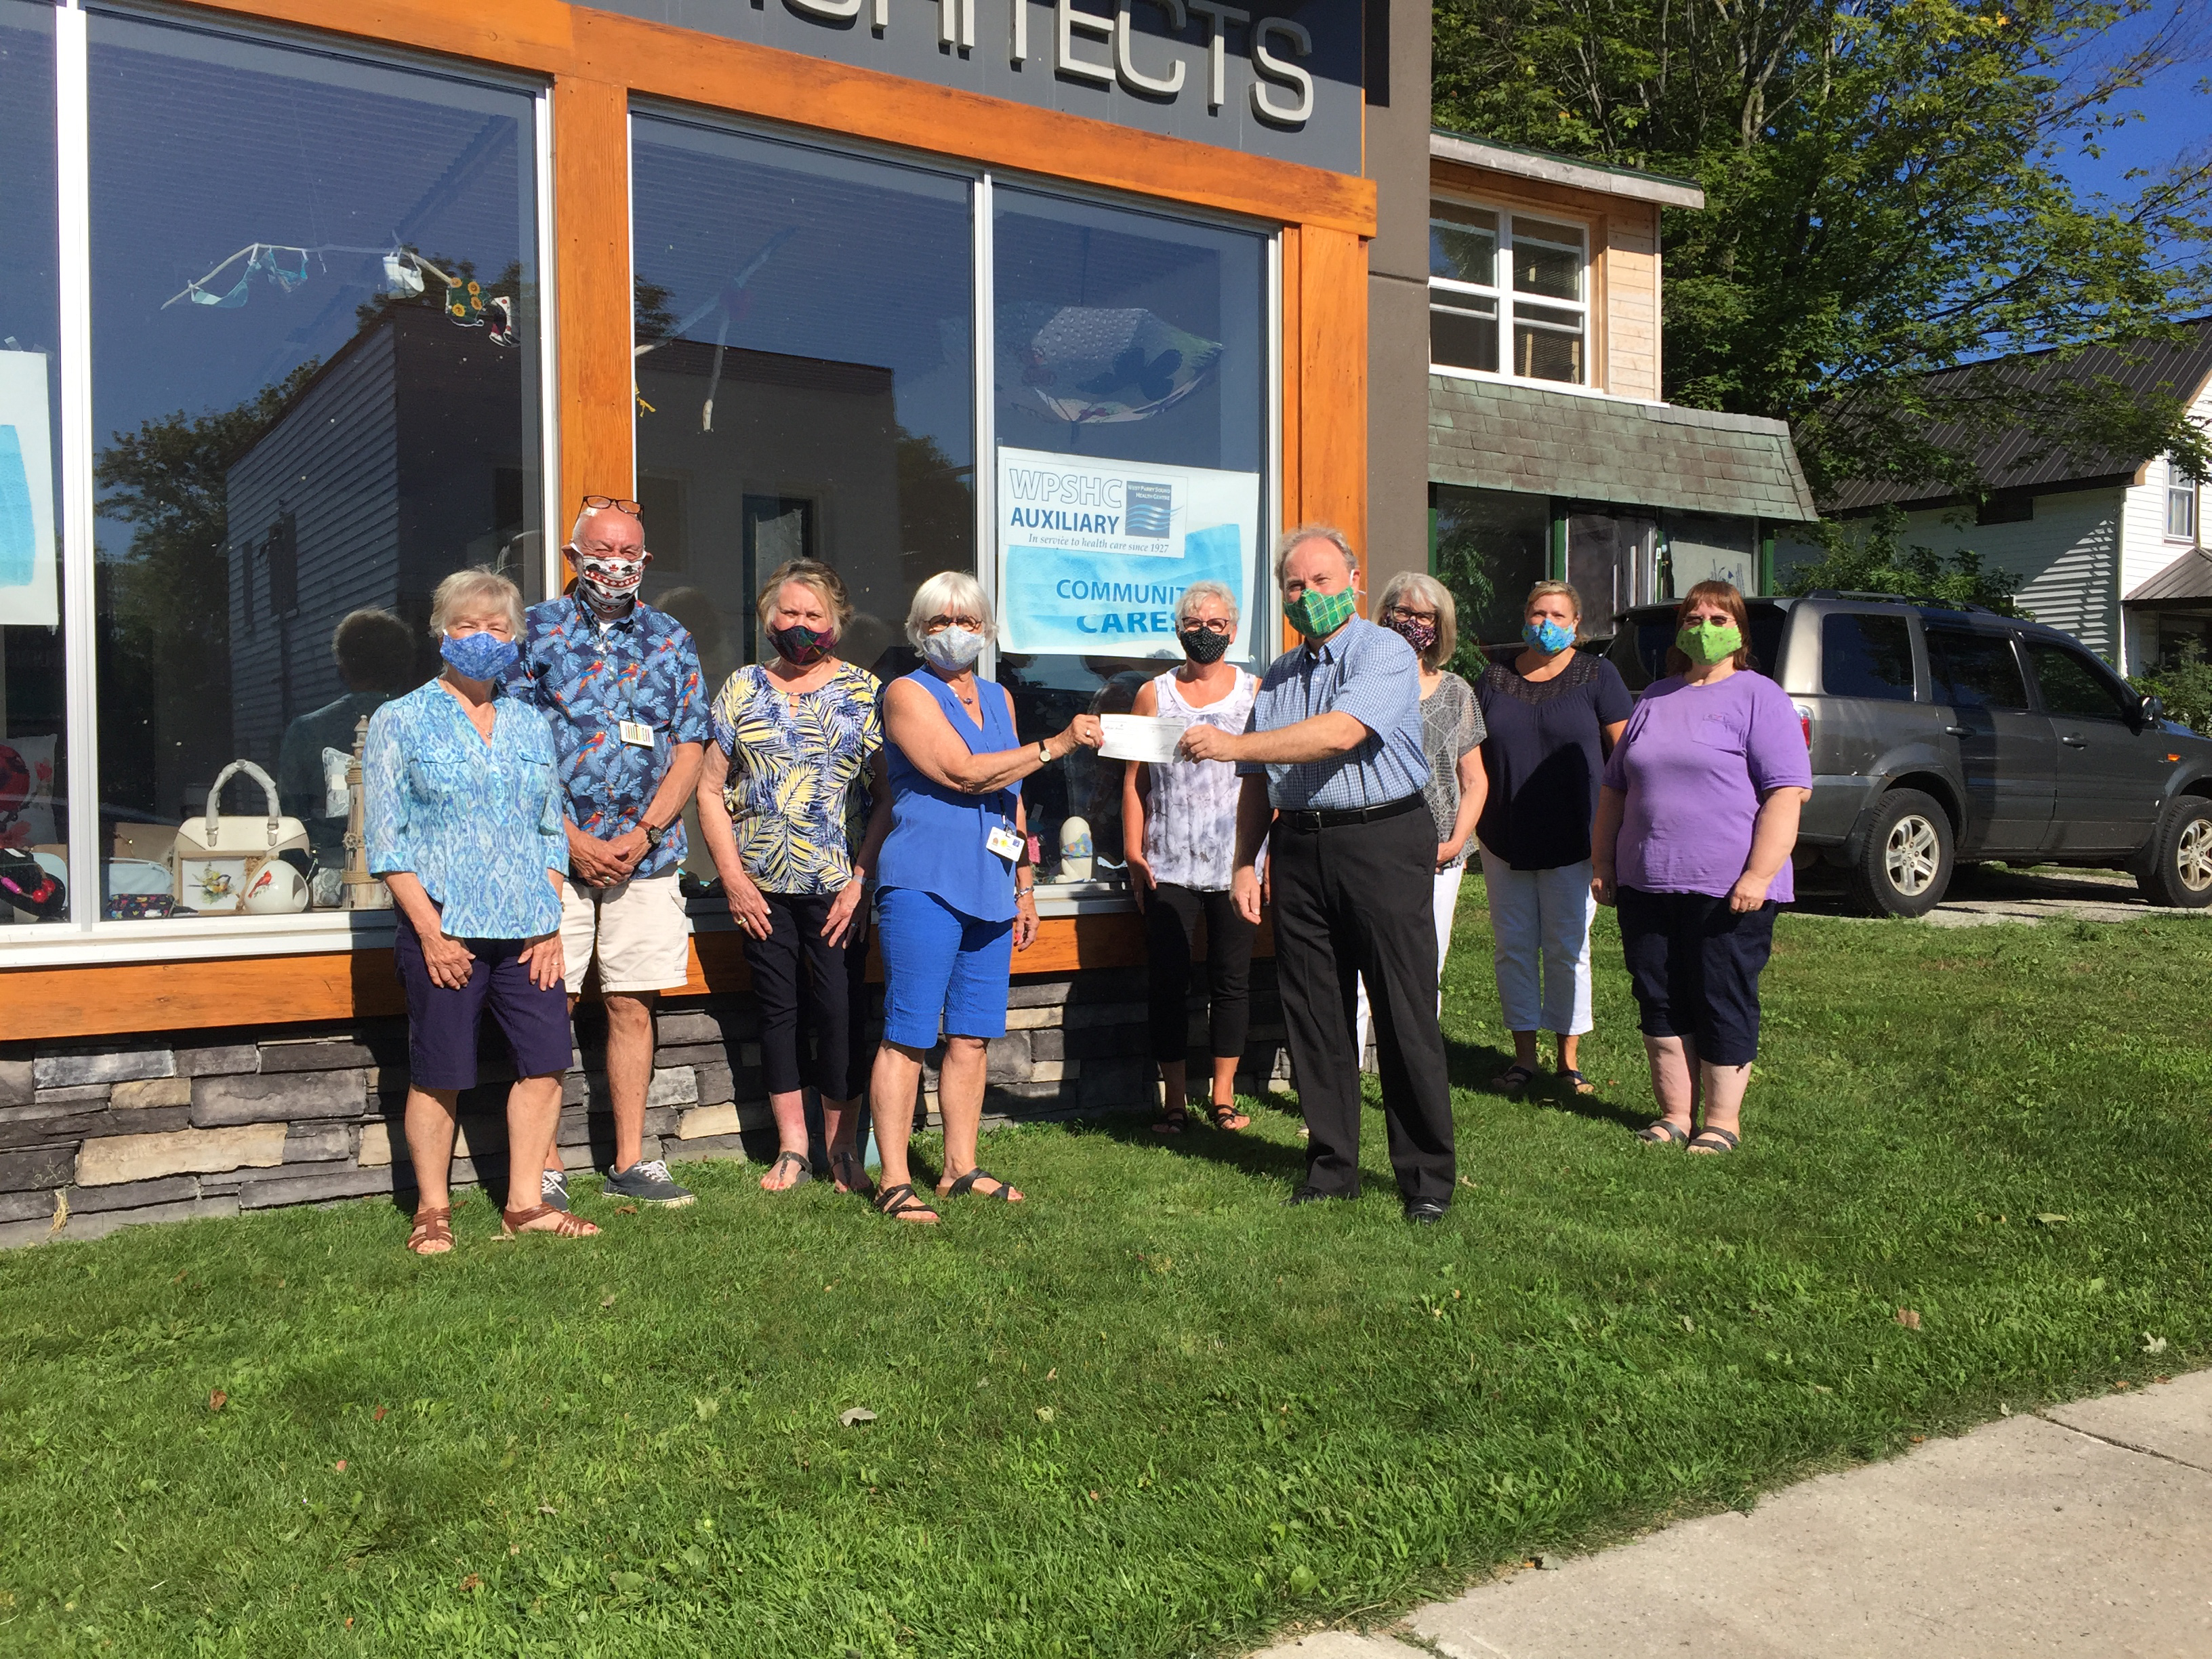 Cheque Presentation Photo - Town to Auxiliary Community Cares